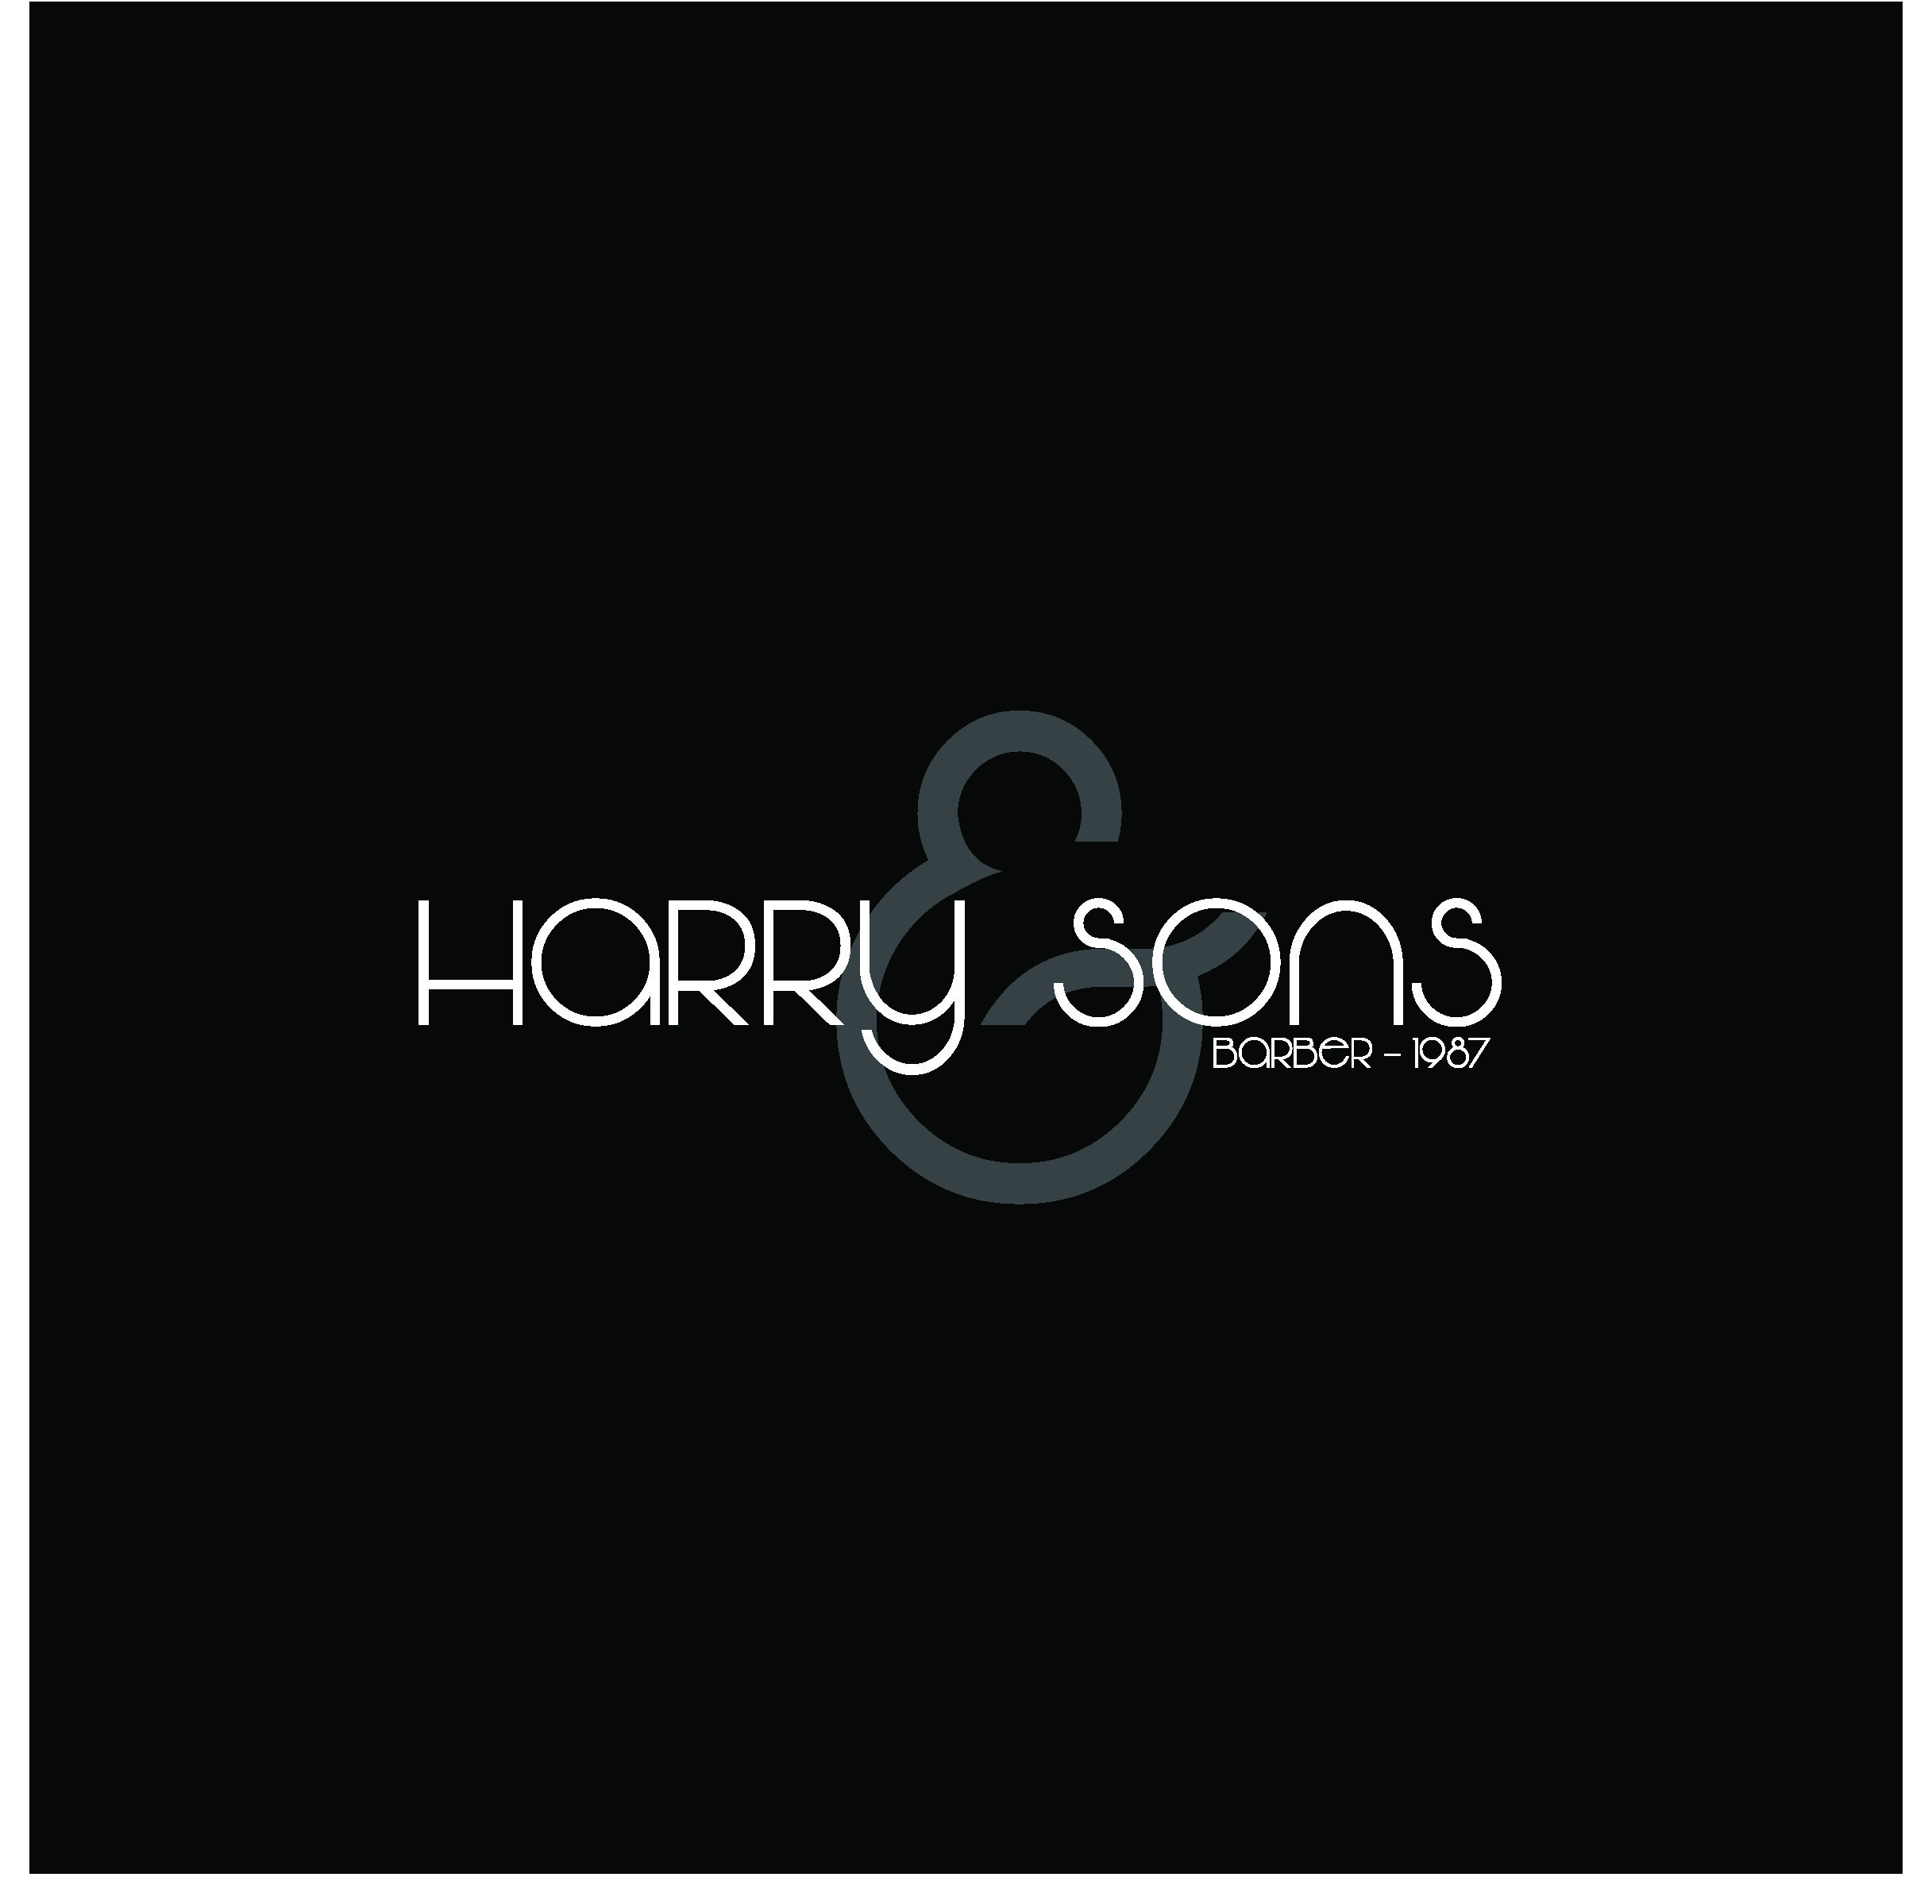 Logo Design by Sampath Gunathilaka - Entry No. 145 in the Logo Design Contest Captivating Logo Design for Harry and Sons Barber.